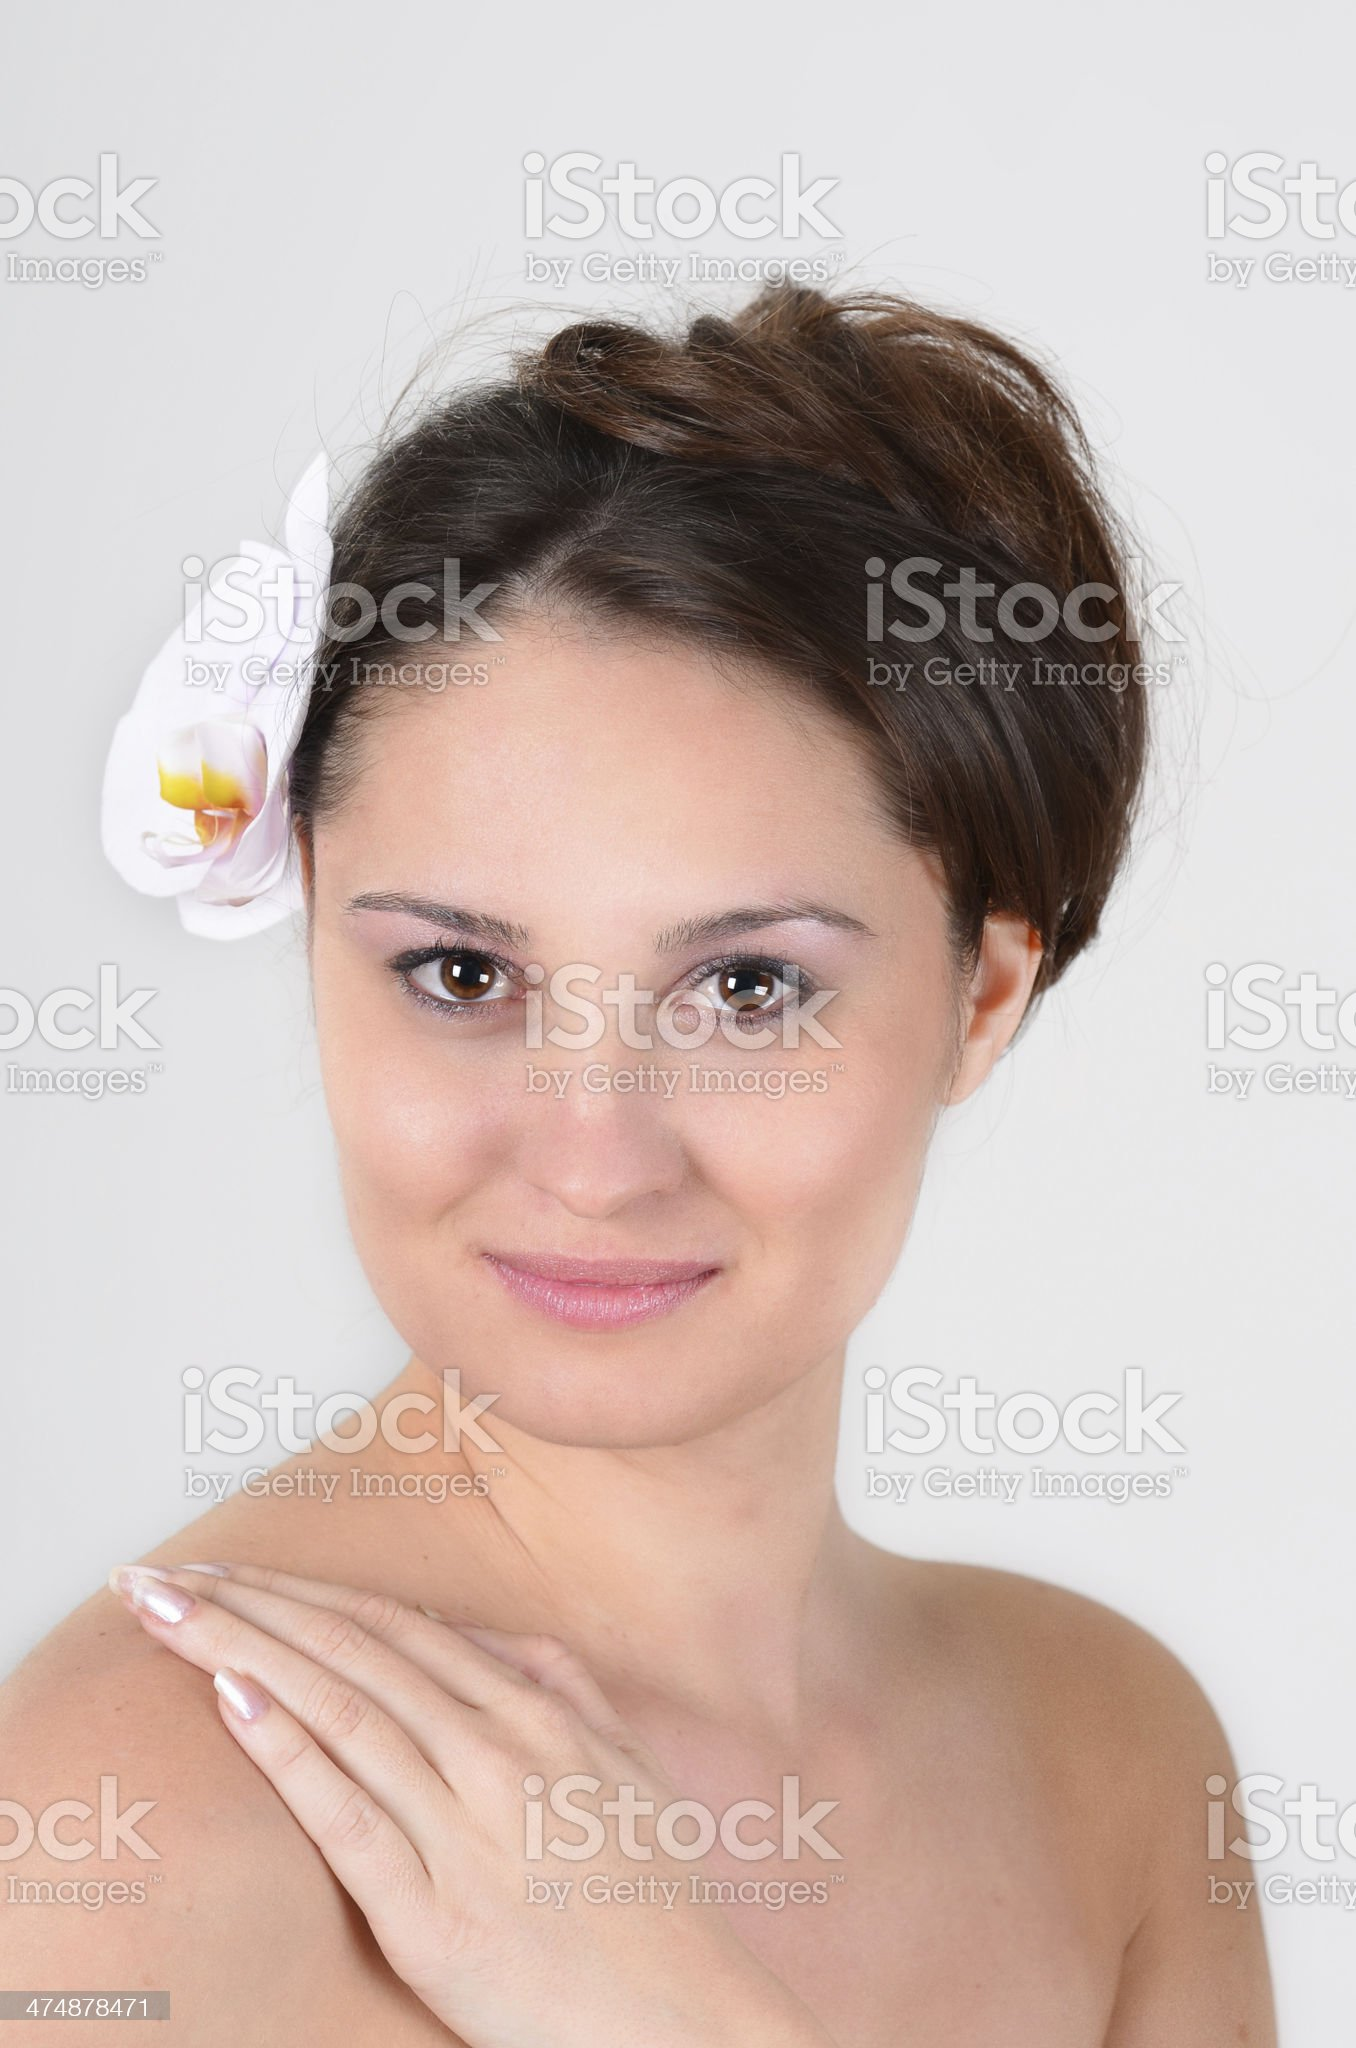 Portrait of beautiful young caucasian woman with perfect smooth skin royalty-free stock photo